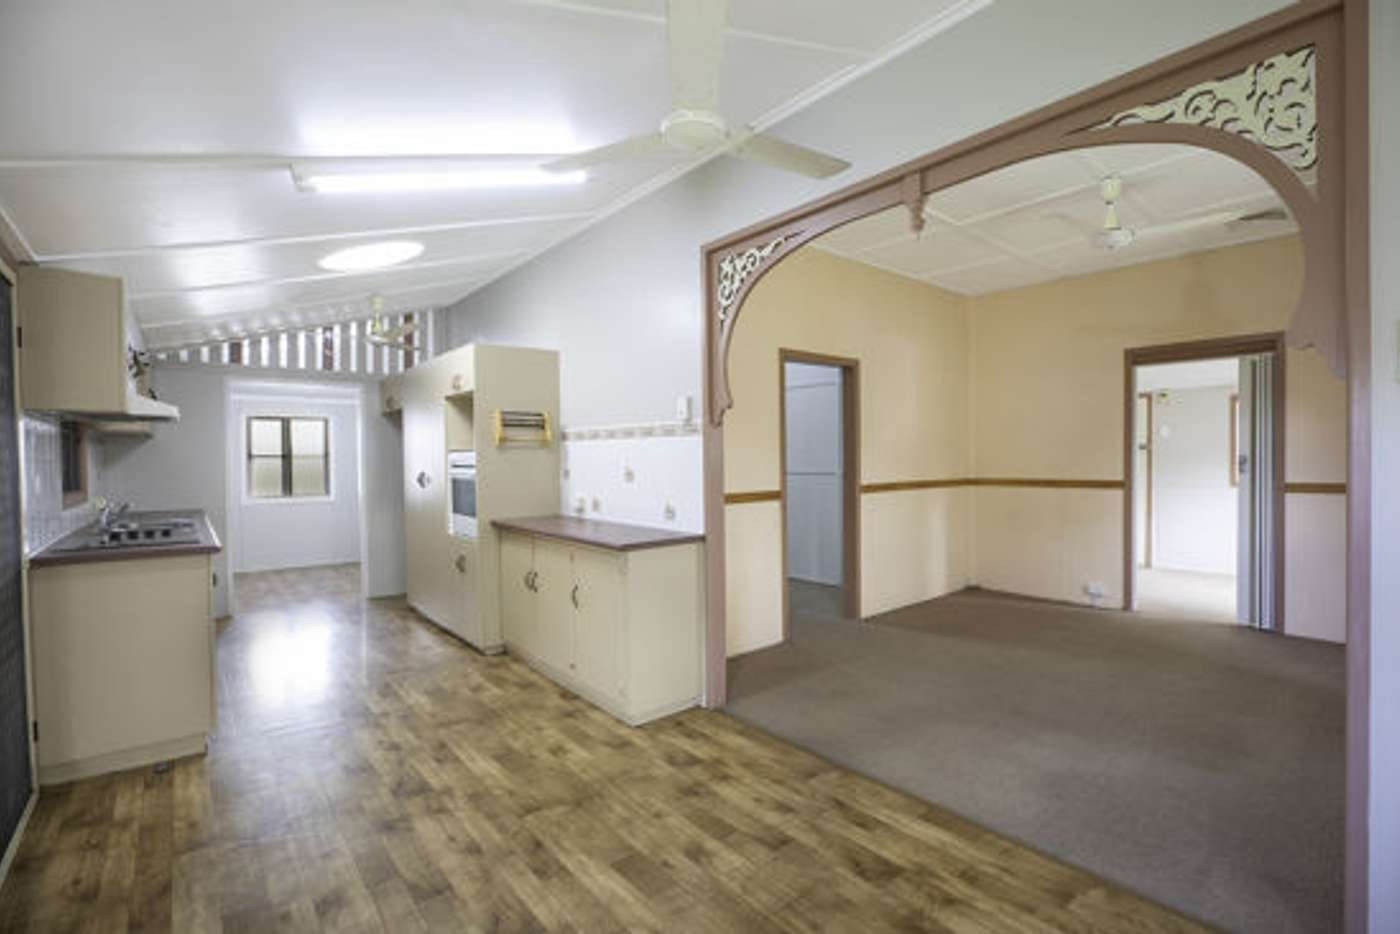 Sixth view of Homely house listing, 36 Milne Lane, West Mackay QLD 4740